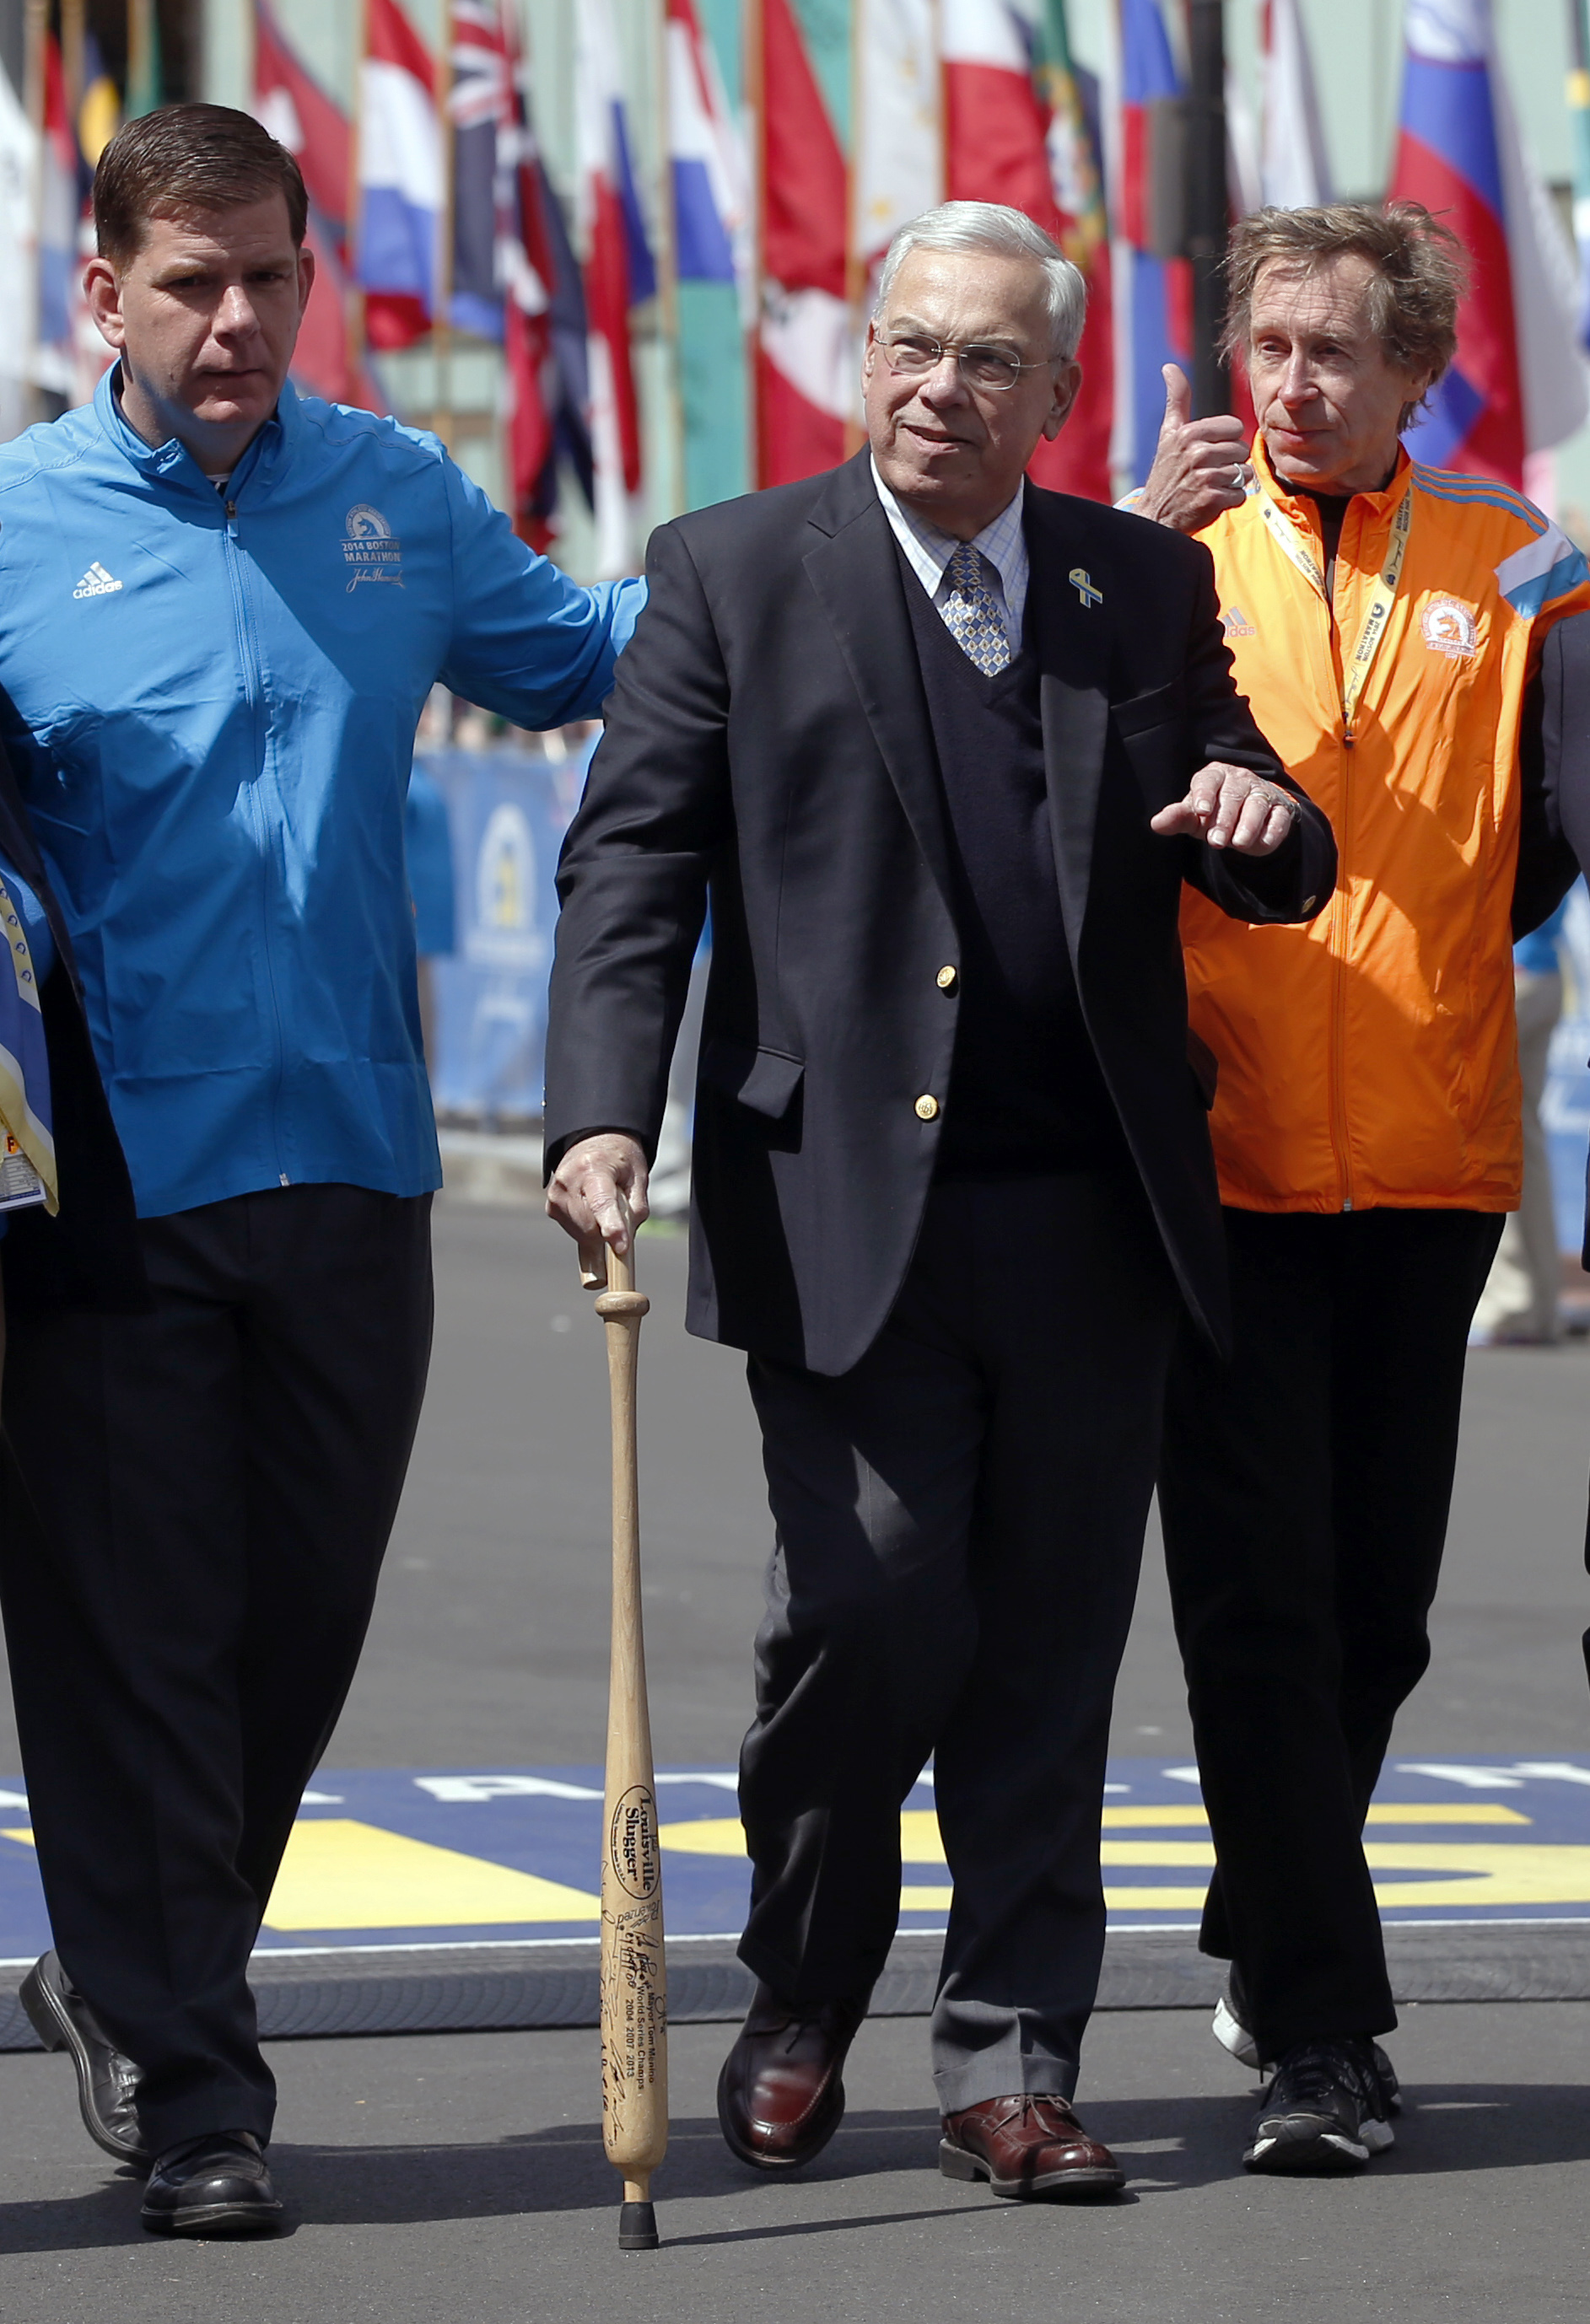 FILE - In this April 21, 2014 file photo, from left, Boston Mayor Martin Walsh, former Mayor Thomas Menino, and four-time Boston Marathon champion Bill Rodgers walk past the finish line before the start of the 118th Boston Marathon in Boston.